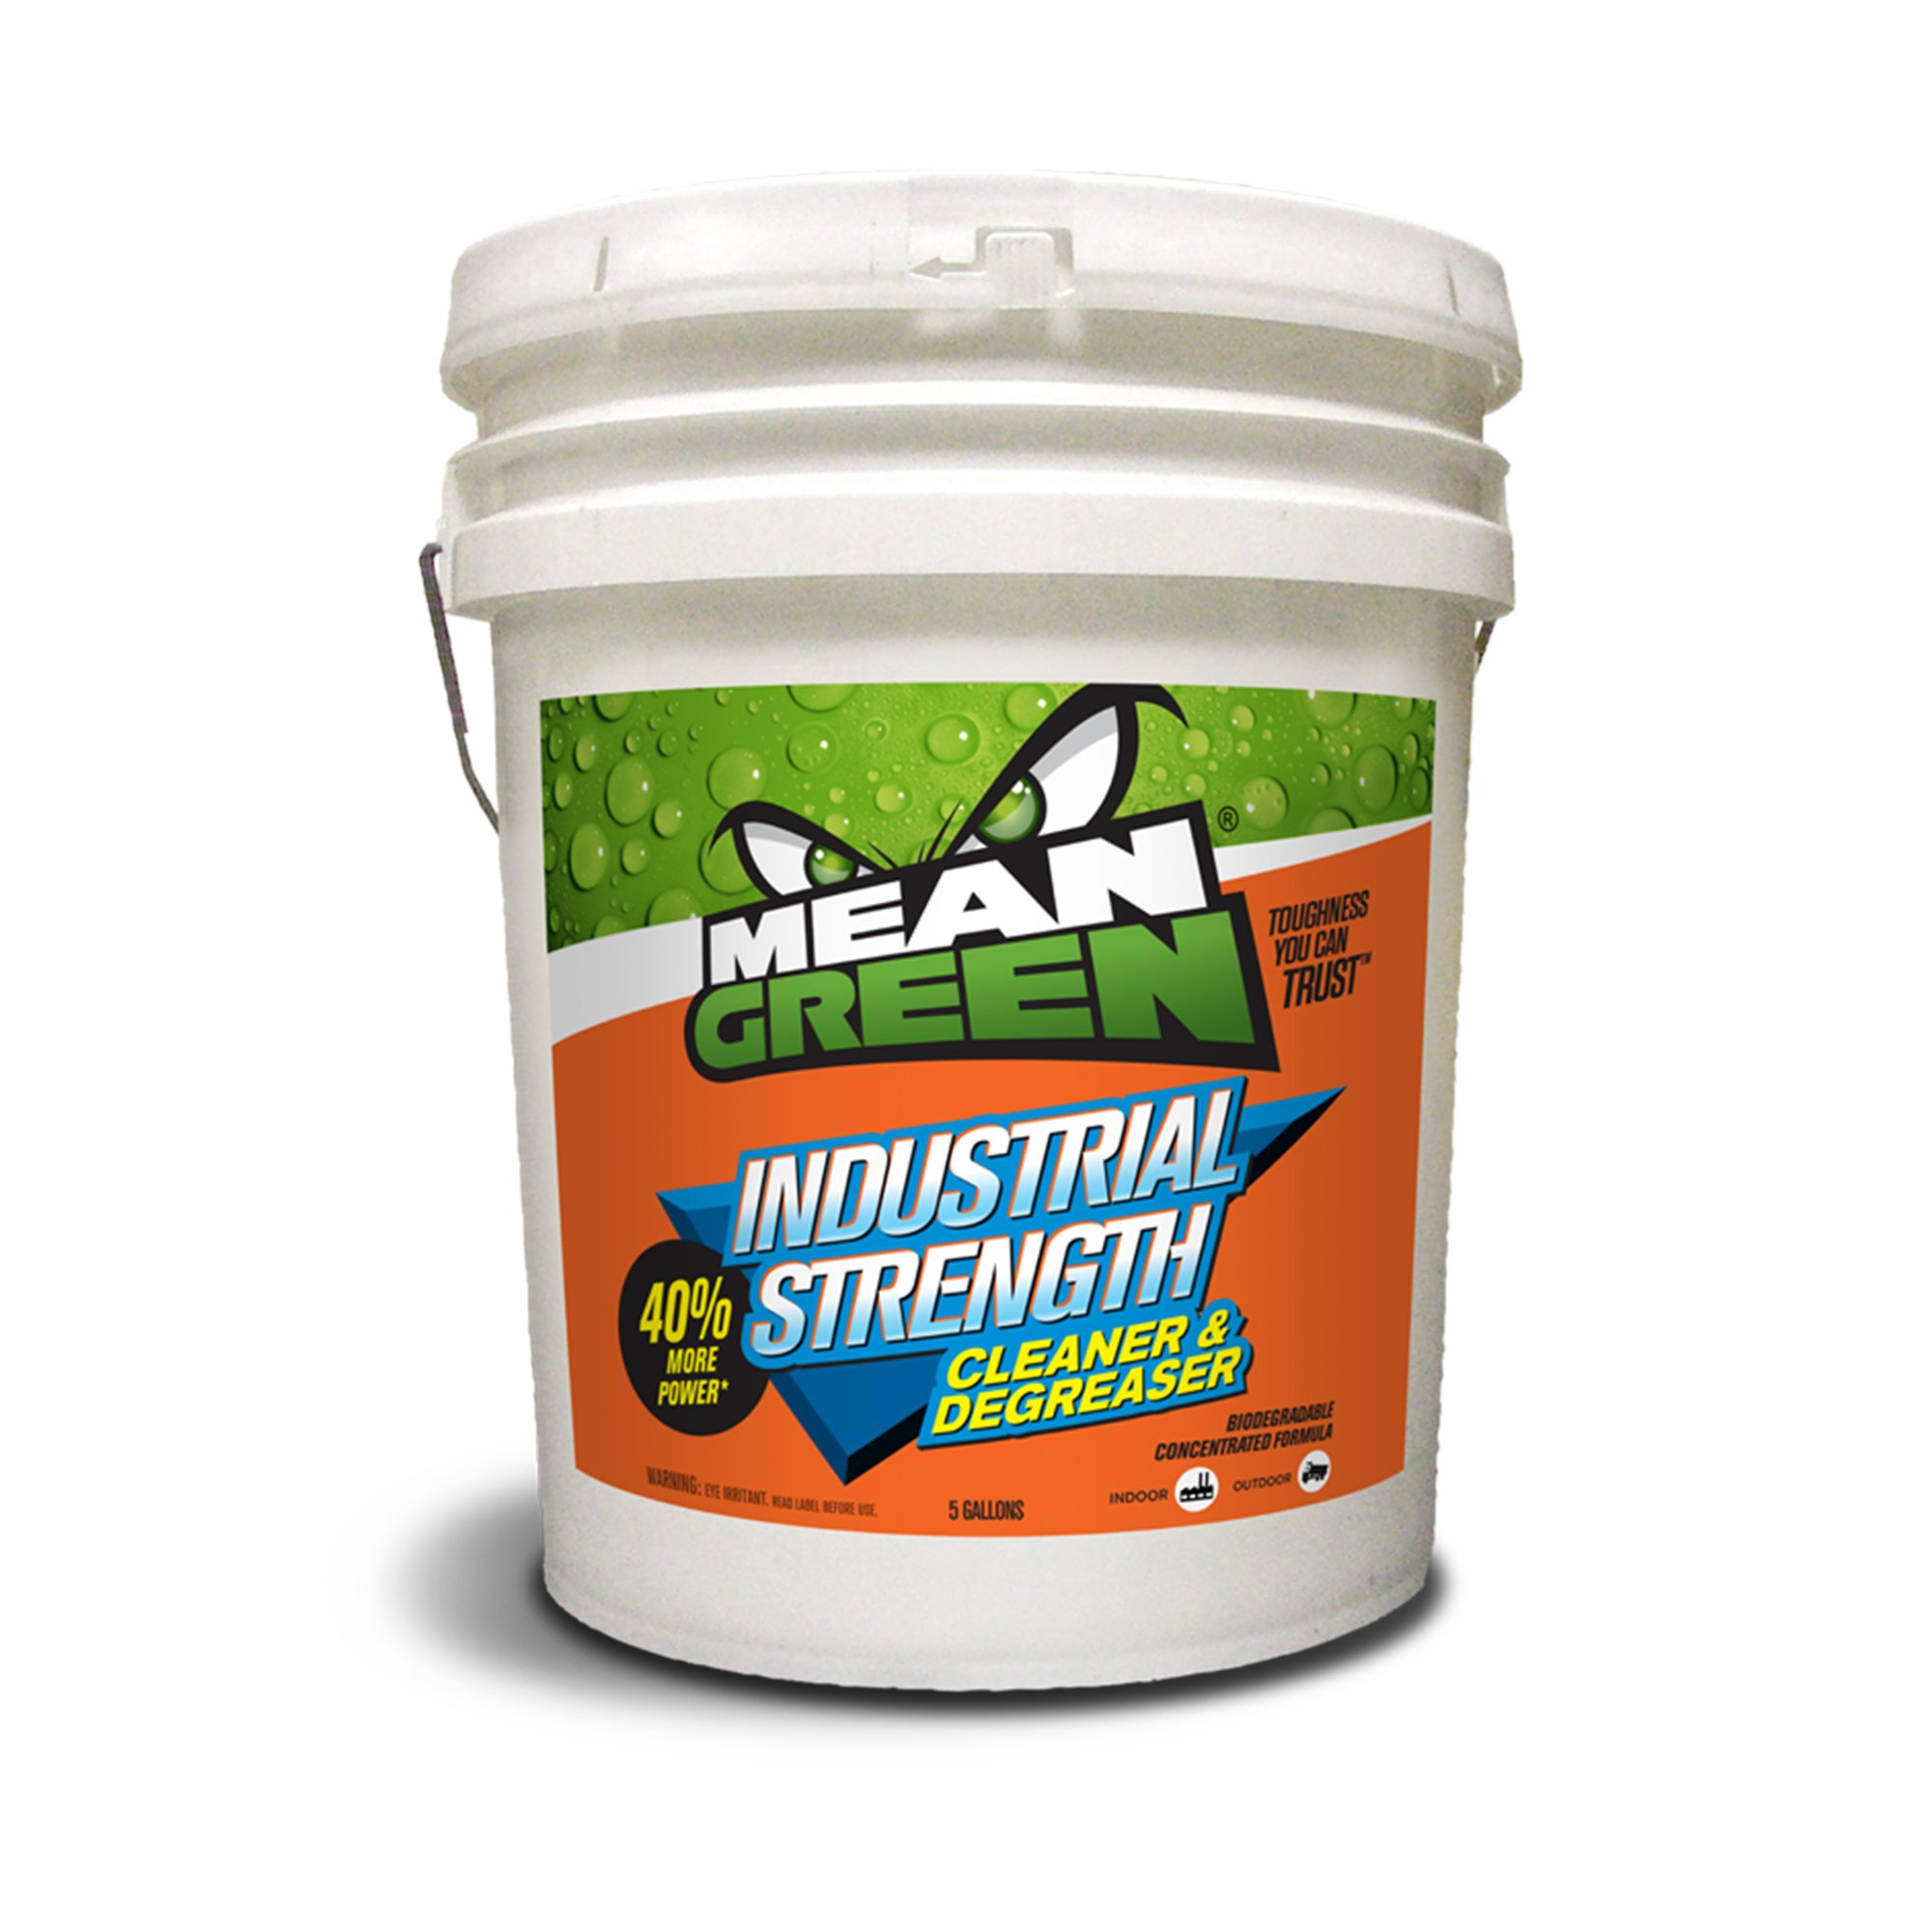 Mean Green Industrial Strength Cleaner & Degreaser (5 gal. Pail)